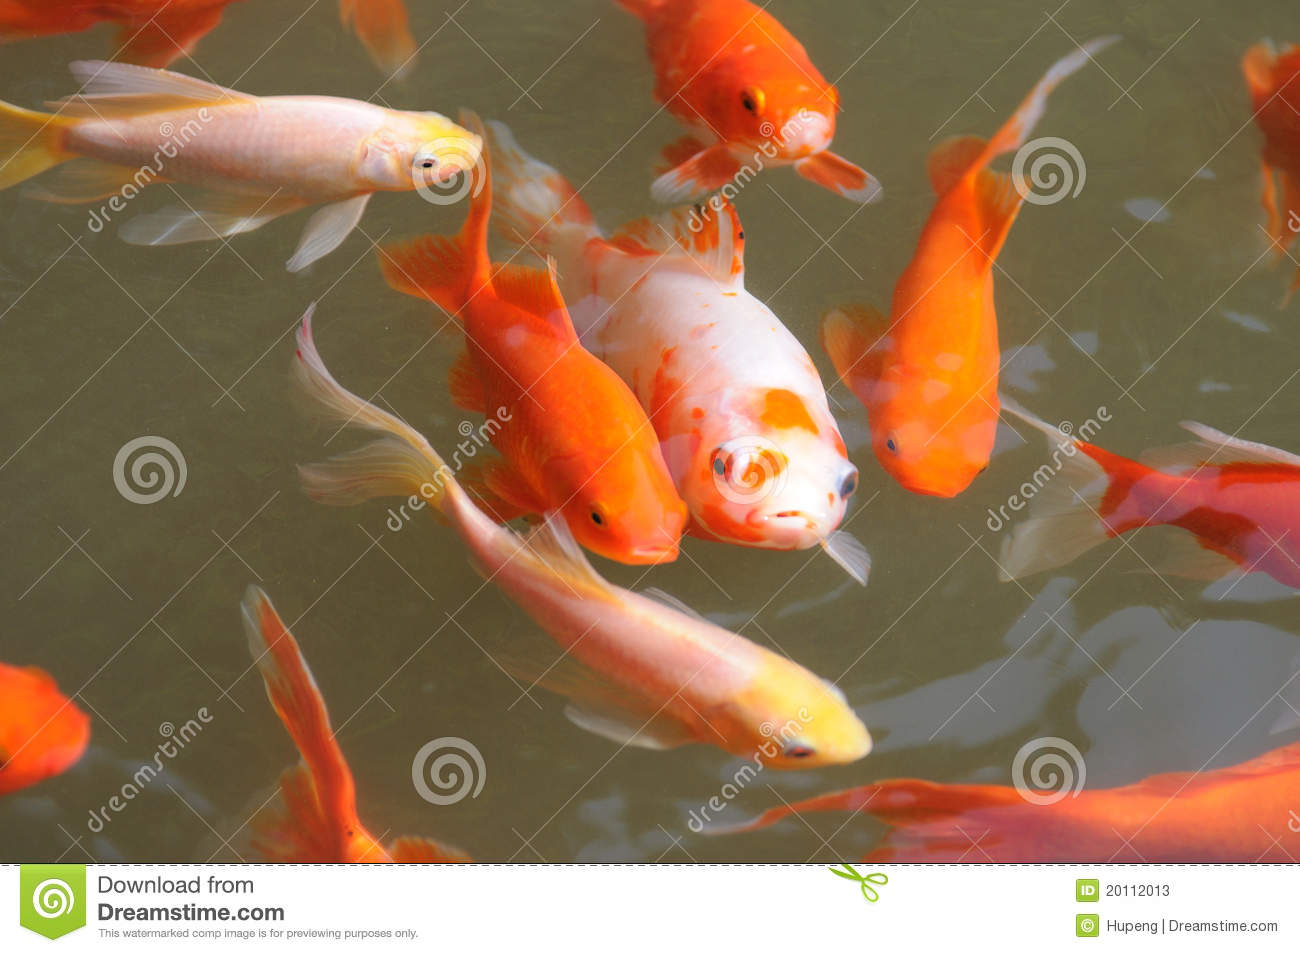 Colorful koi fish swimming in water stock illustration for Dream of fish swimming